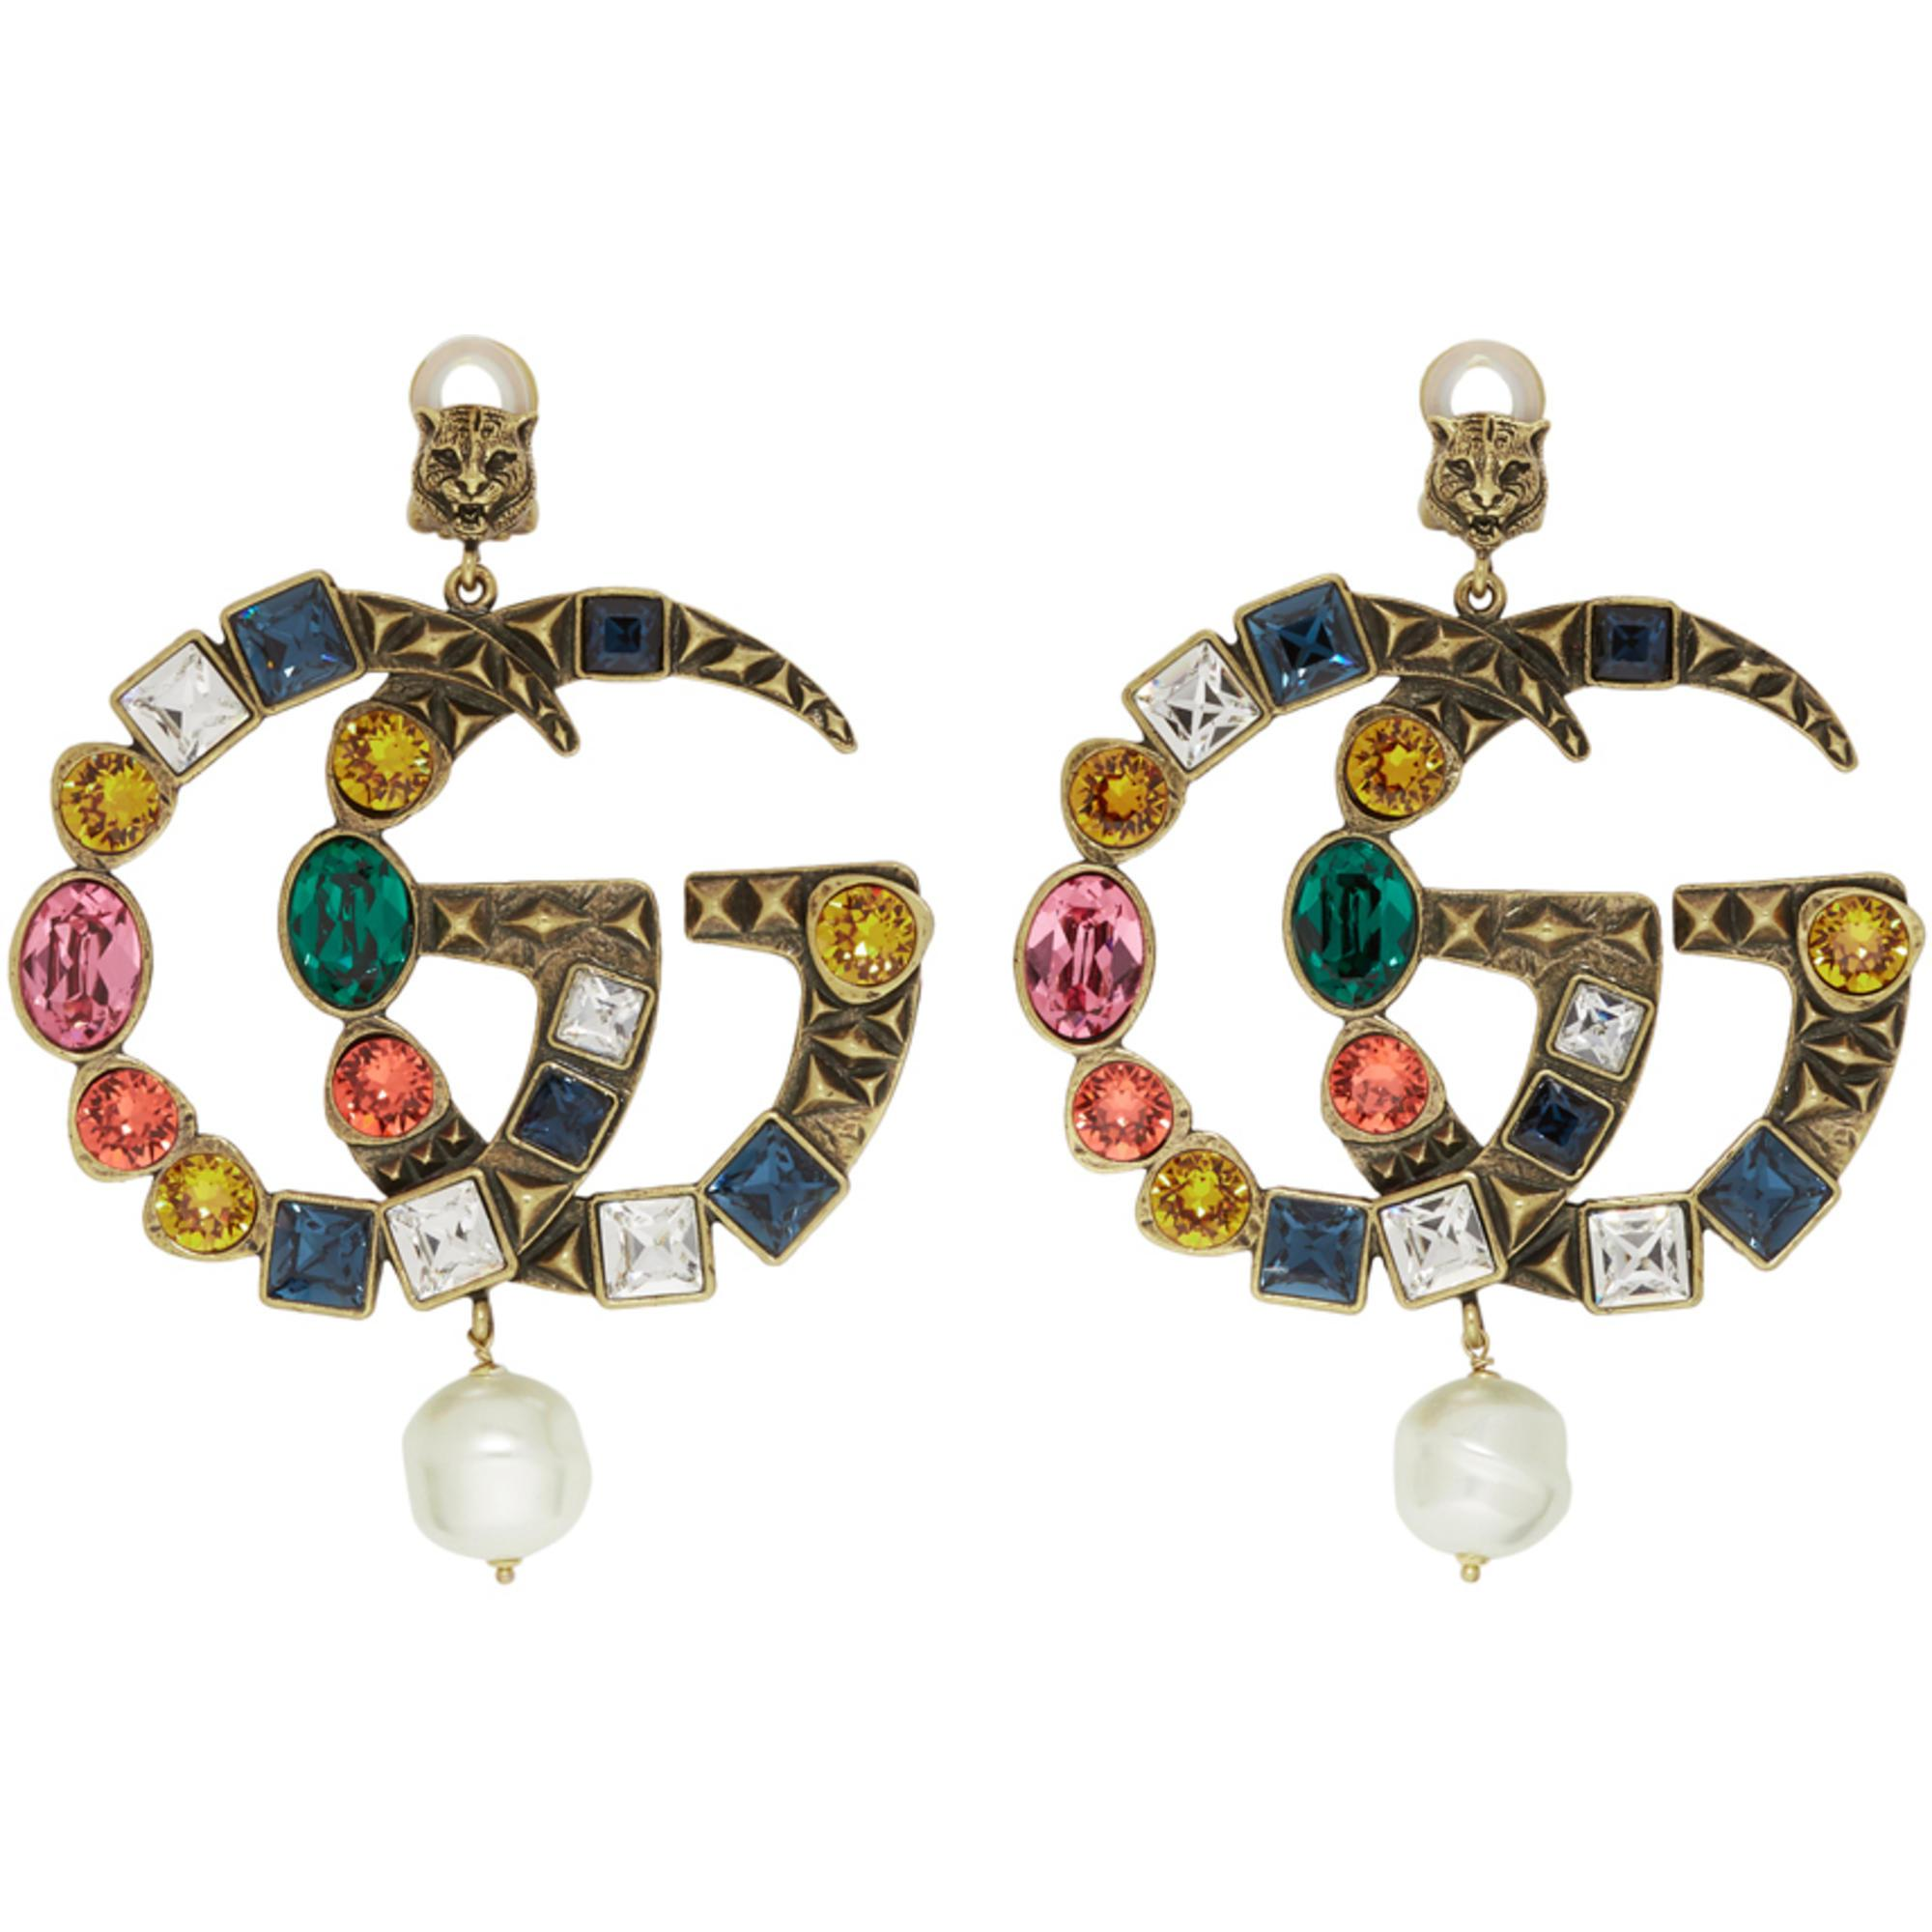 Gucci Beaded clip-on earrings nqr7I22nt